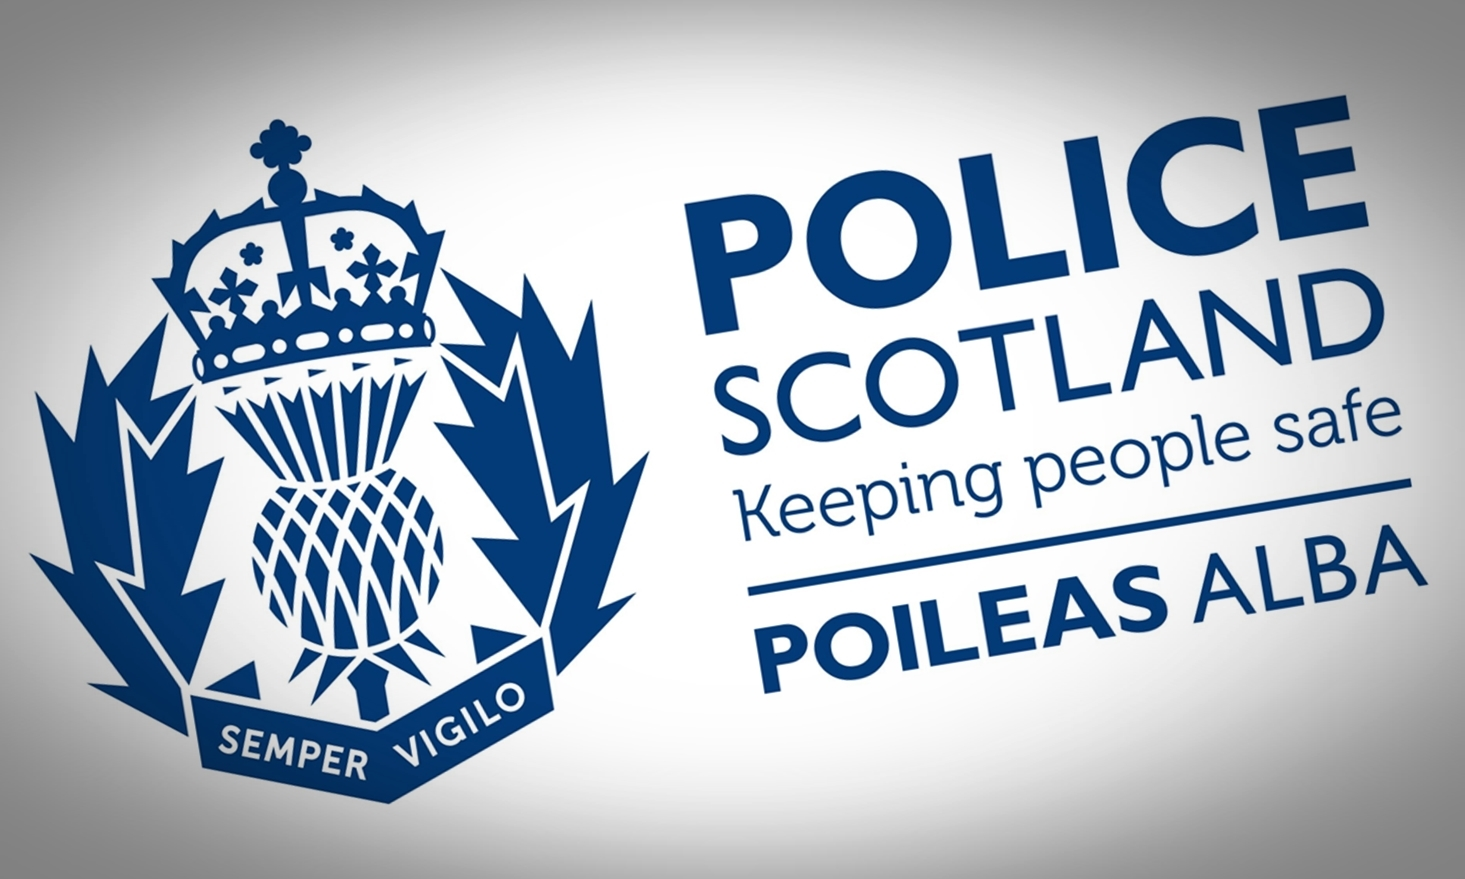 Police Scotland already has a bilingual logo